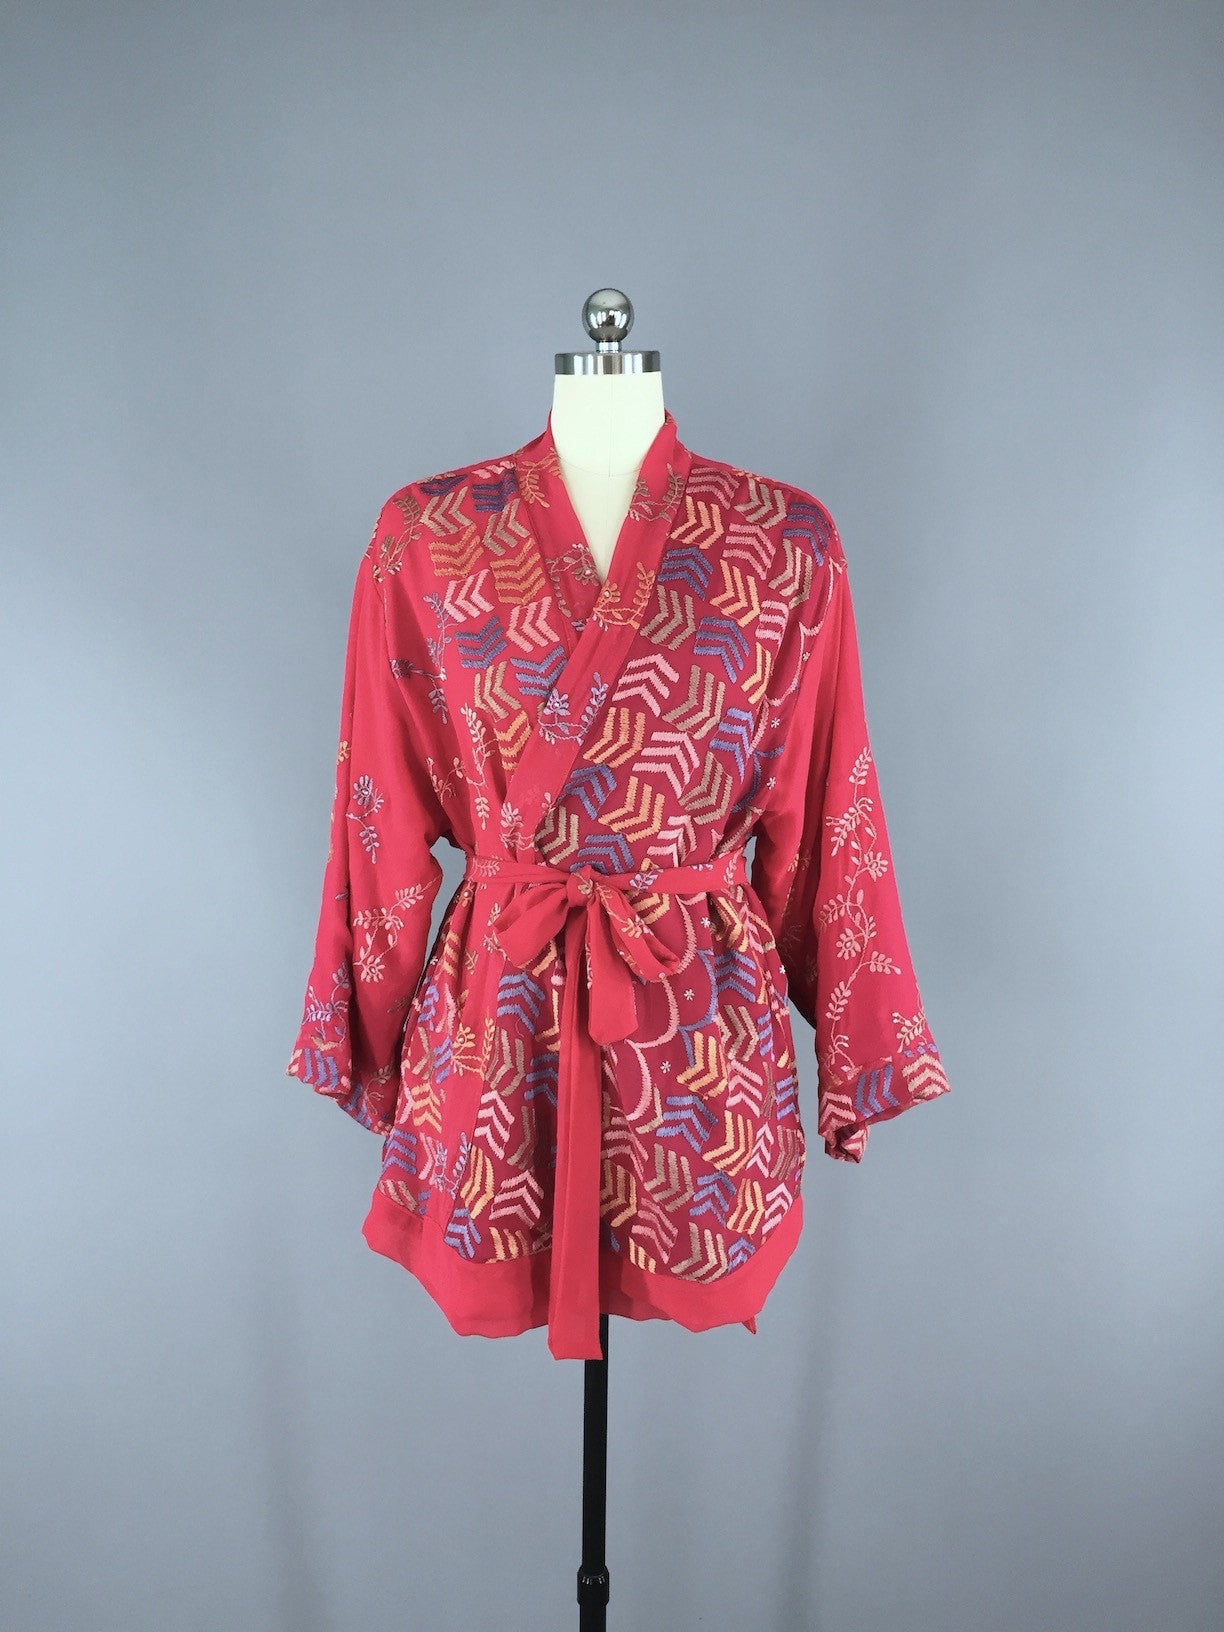 Silk Chiffon Kimono Cardigan made from a Vintage Indian Sari with Red Chevron Embroidery Sari Kimono ThisBlueBird